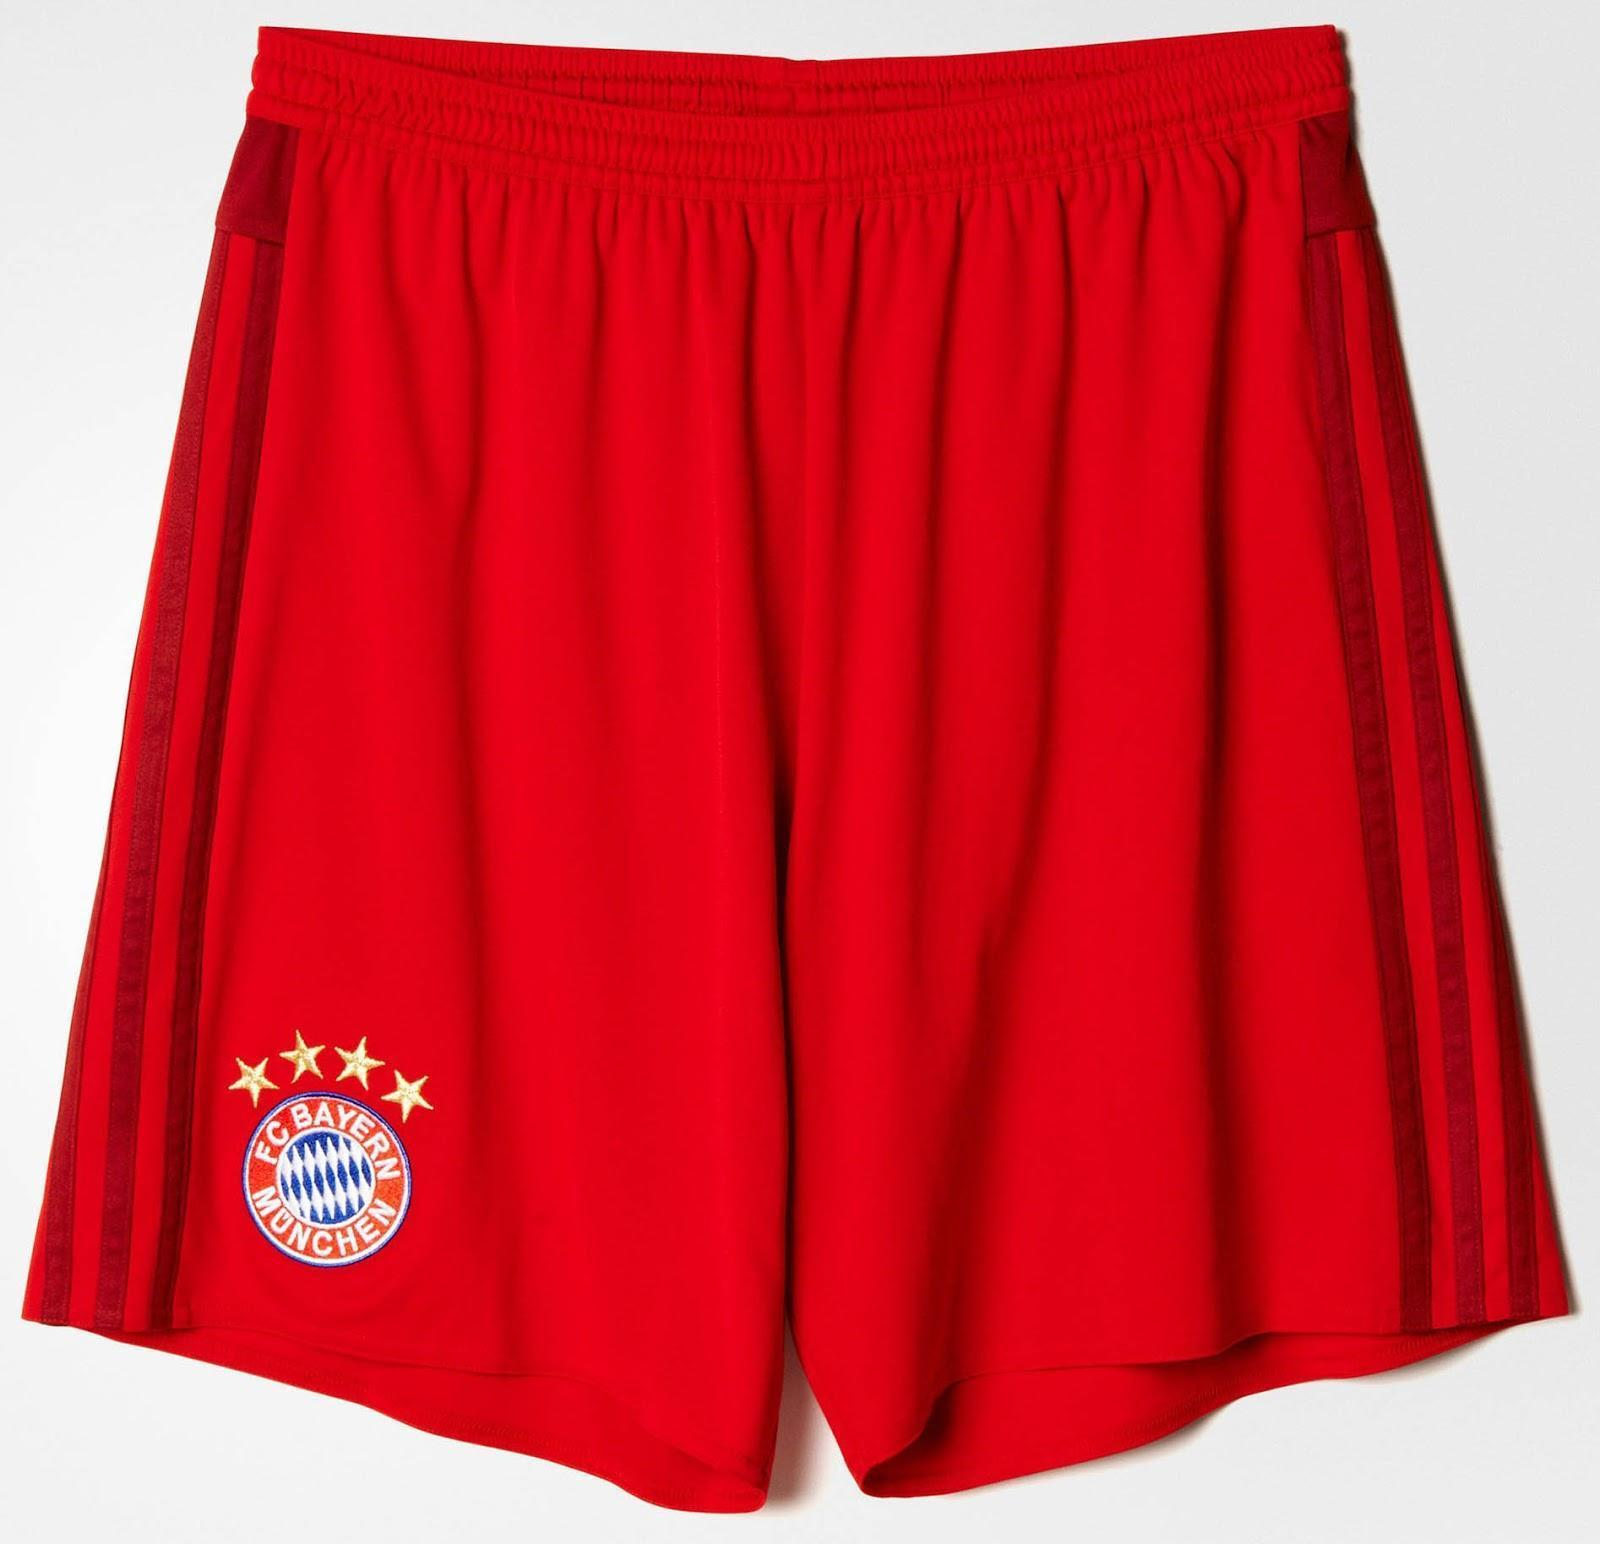 Bayern-Munich-15-16-adidas-new-home-kit-2.jpg